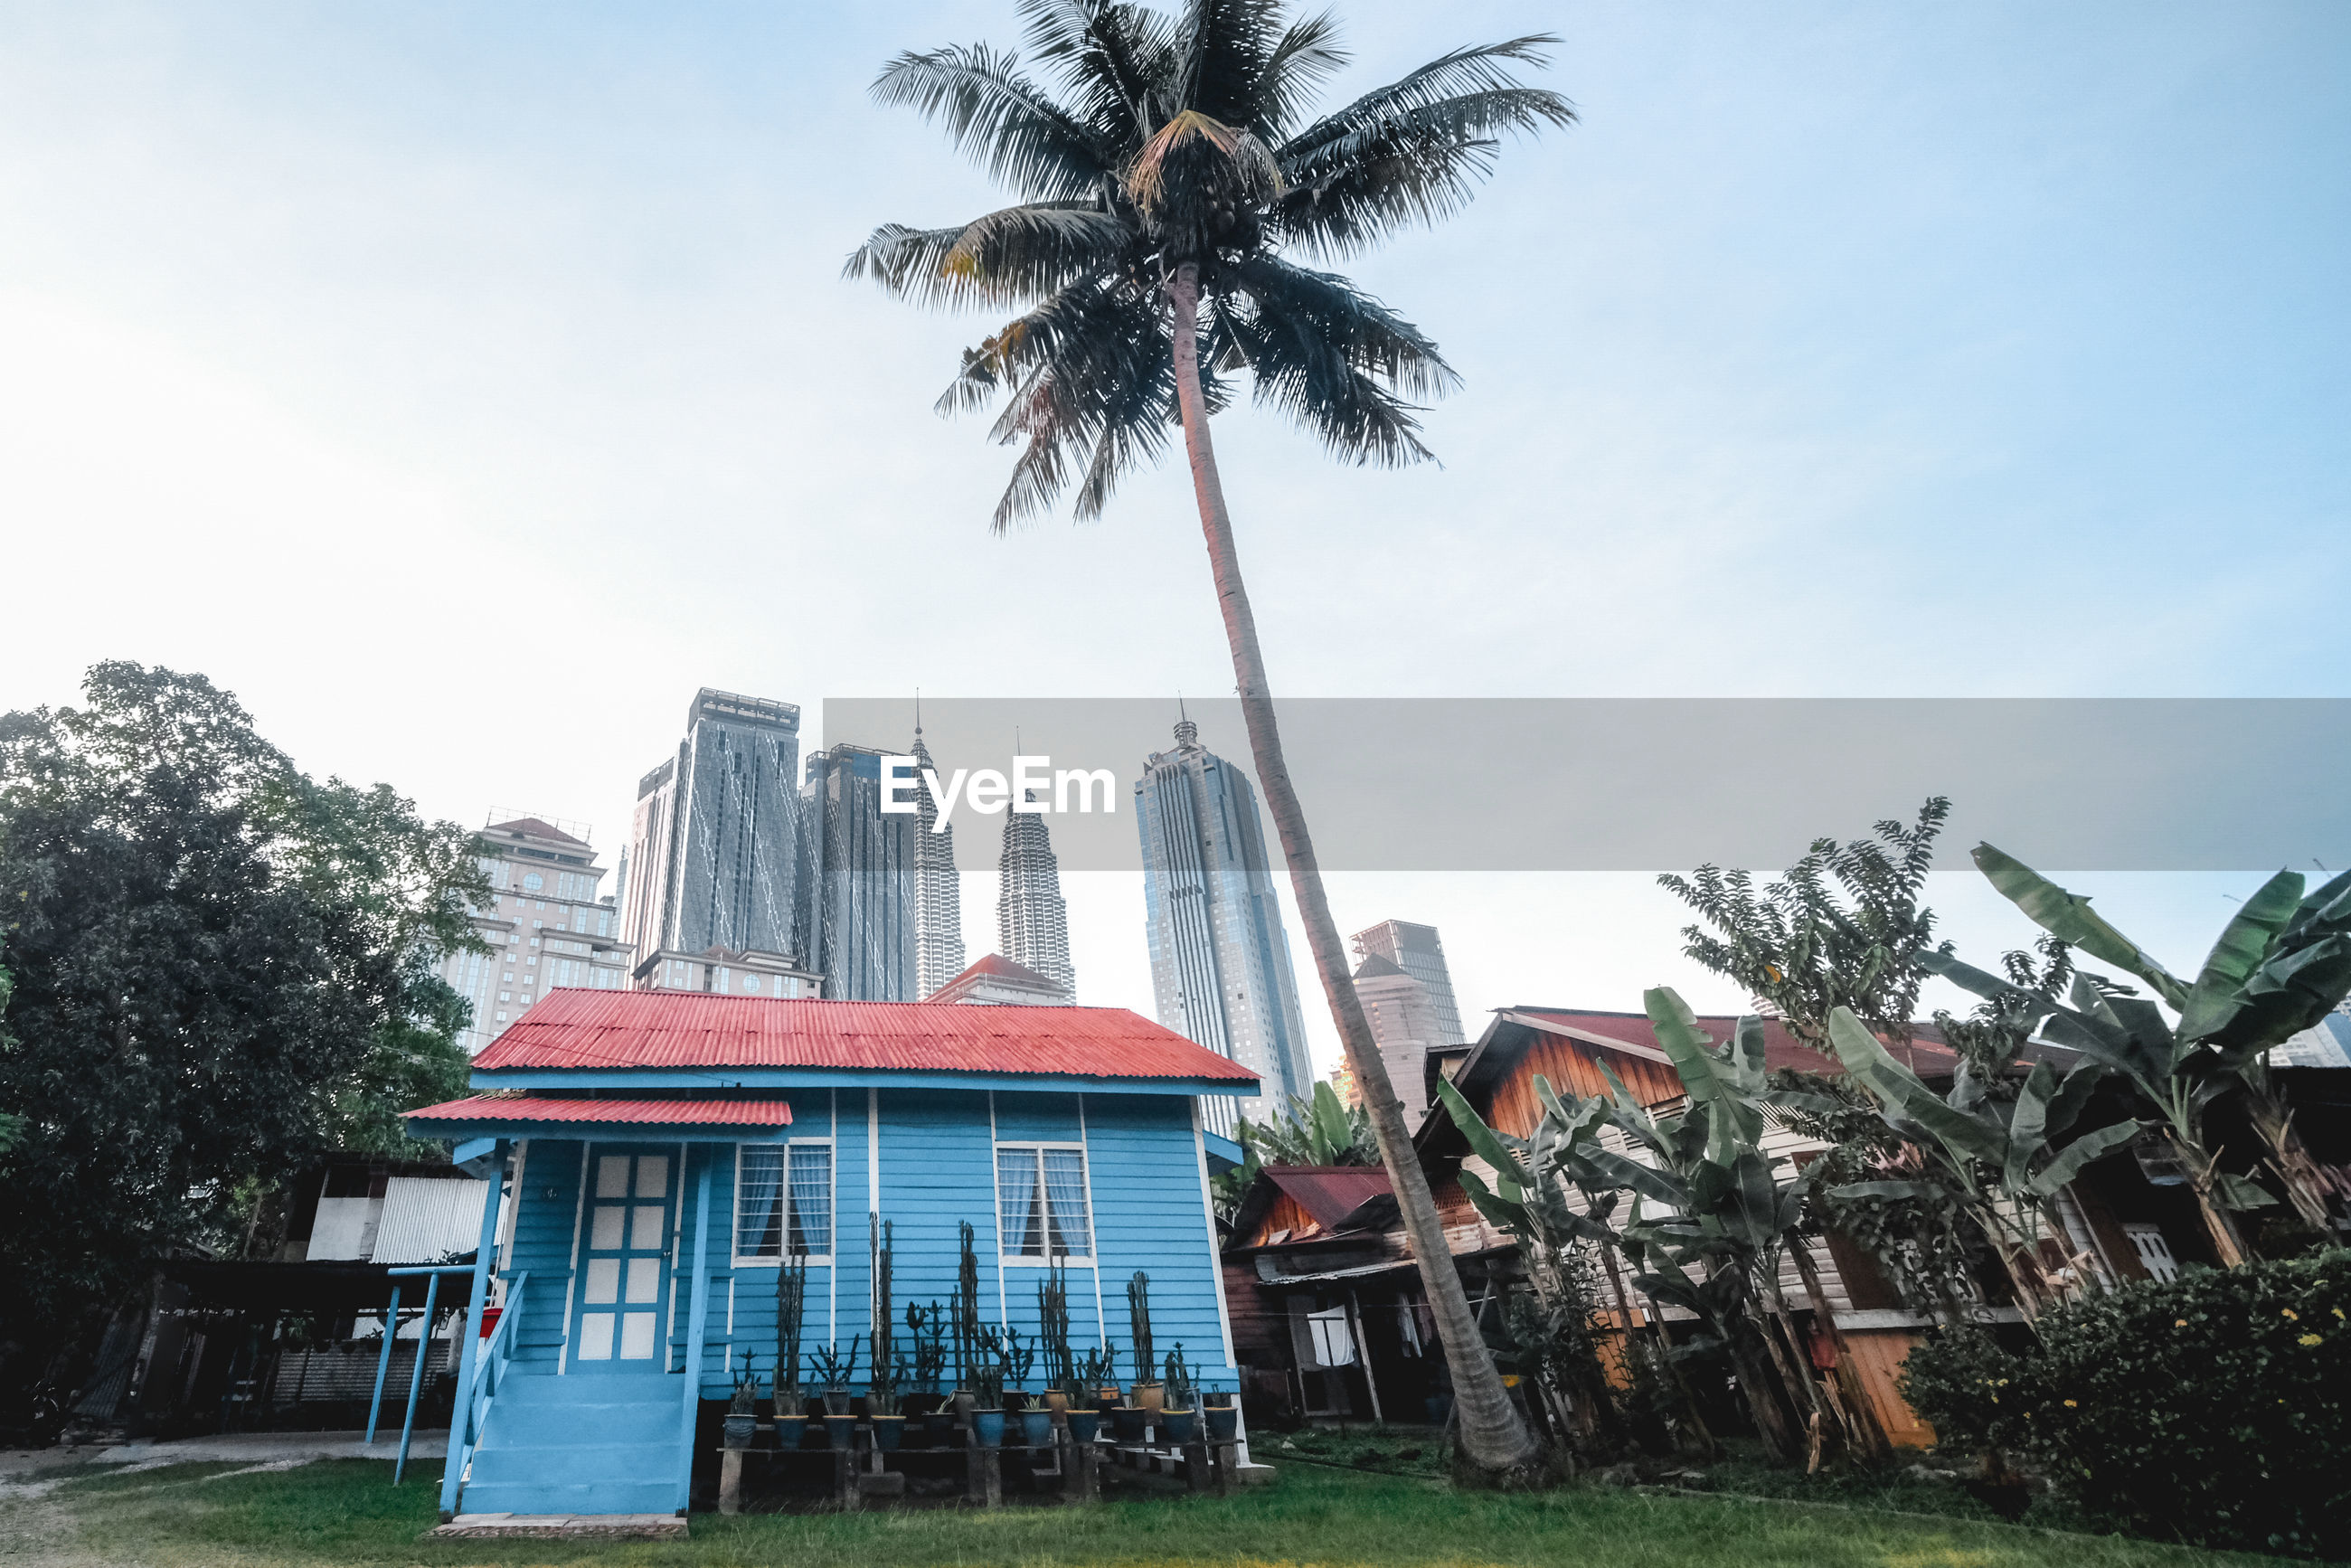 LOW ANGLE VIEW OF COCONUT PALM TREES AGAINST BUILDINGS